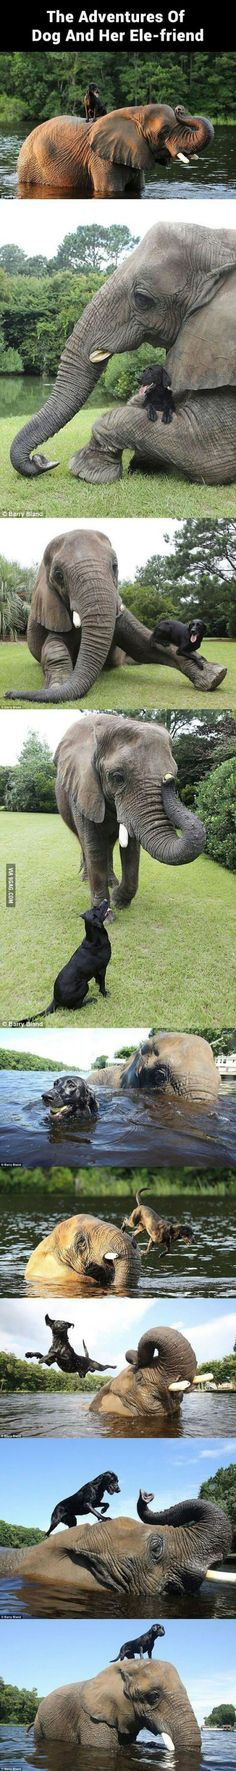 The cutest and most unlikely animal friendship you'll see.